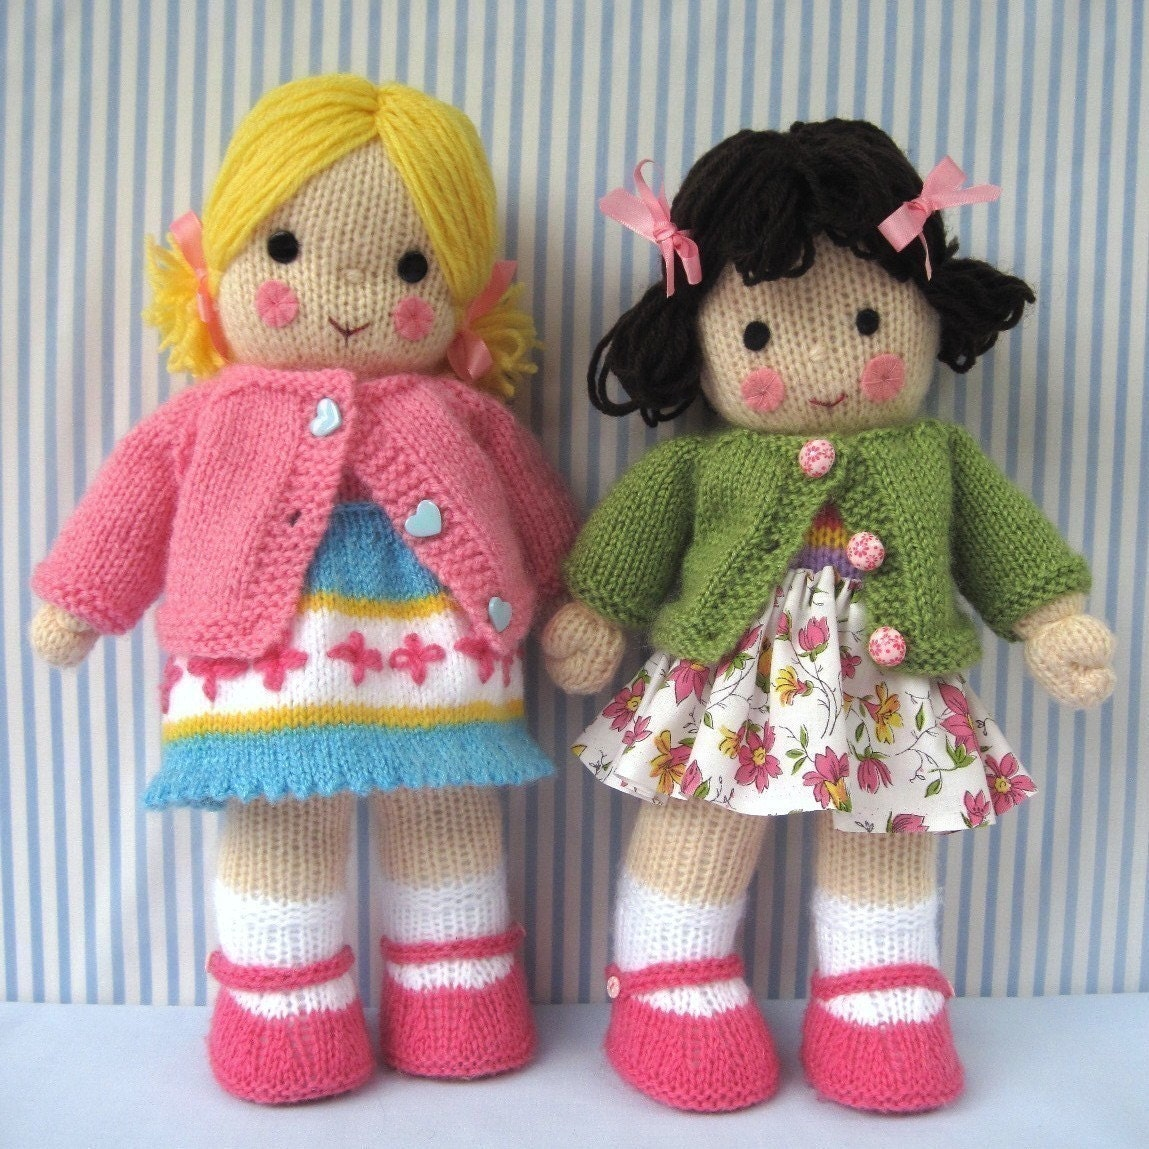 Knitting Patterns For Toy Dolls : POLLY and KATE knitted toy dolls PDF email knitting